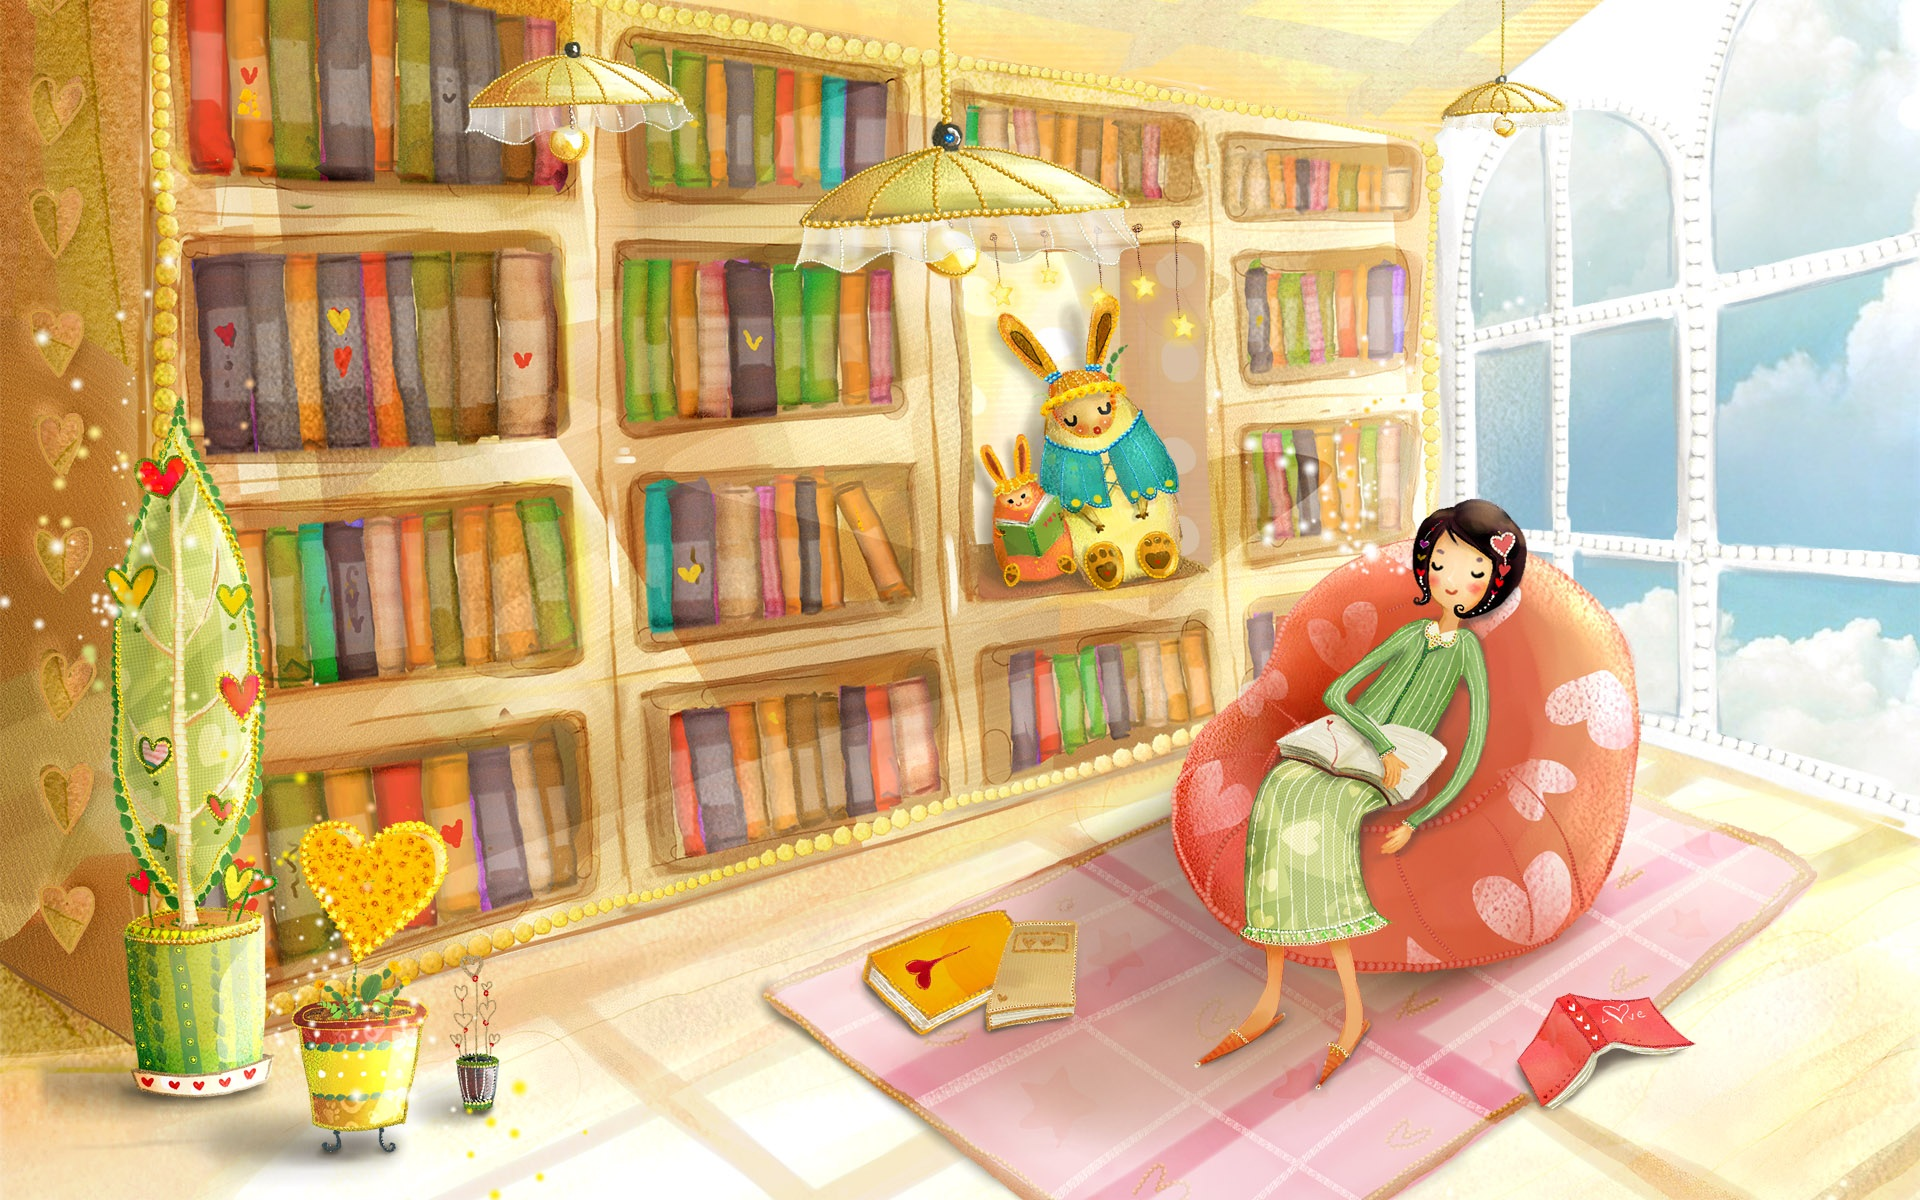 Wallpaper Rest of the girls in the study 1920x1200 HD Picture, Image